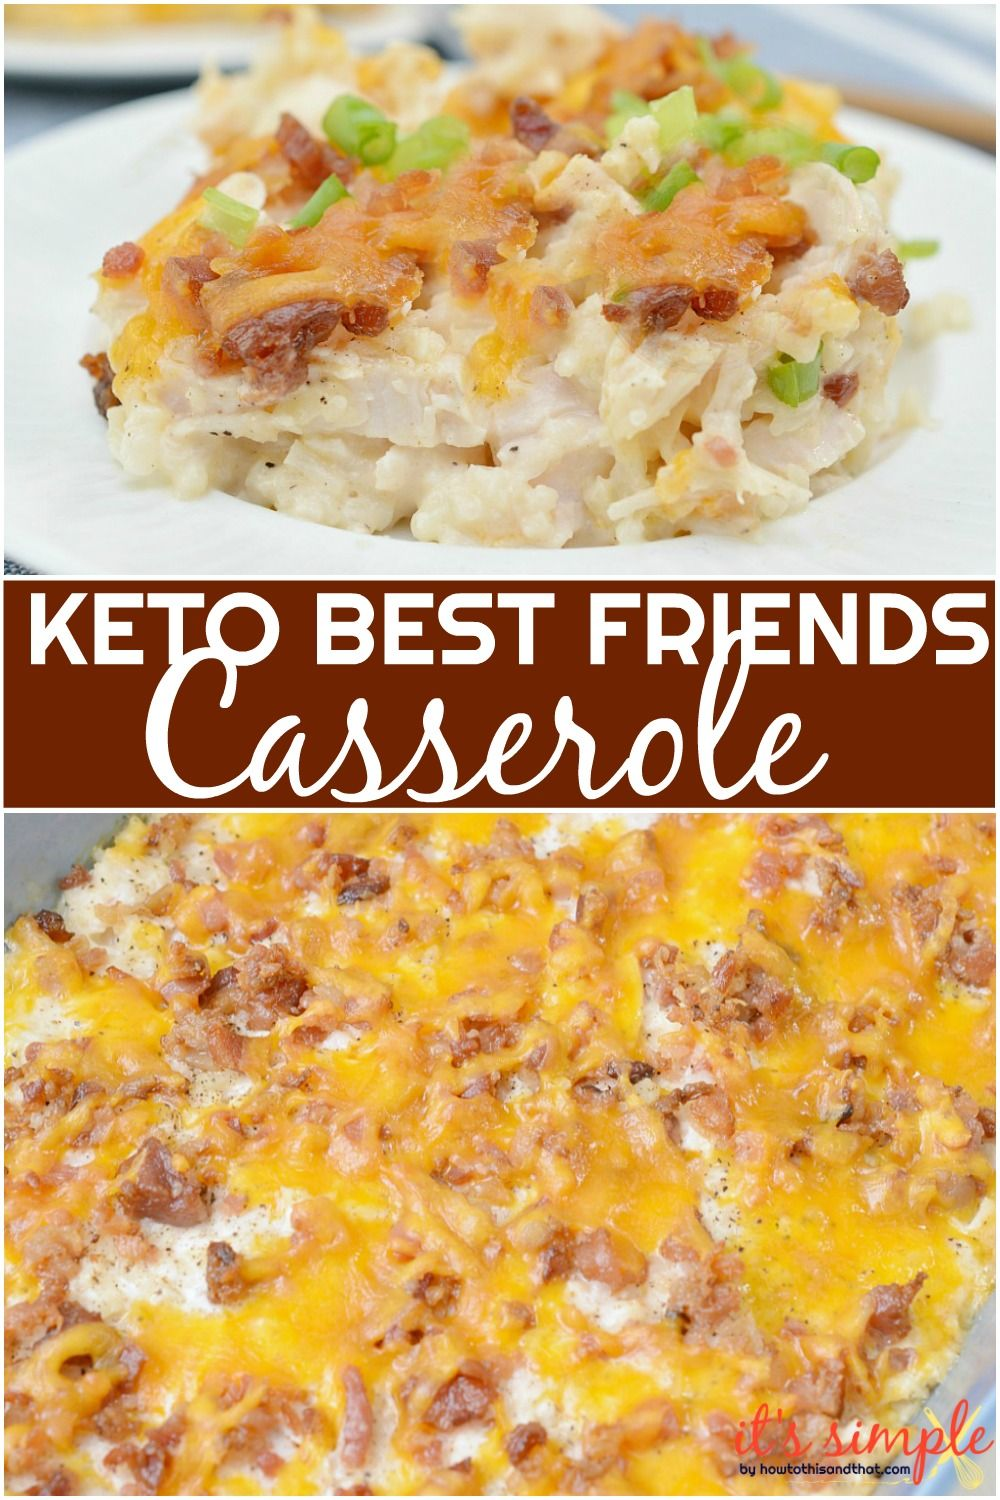 Keto Best Friends Casserole images